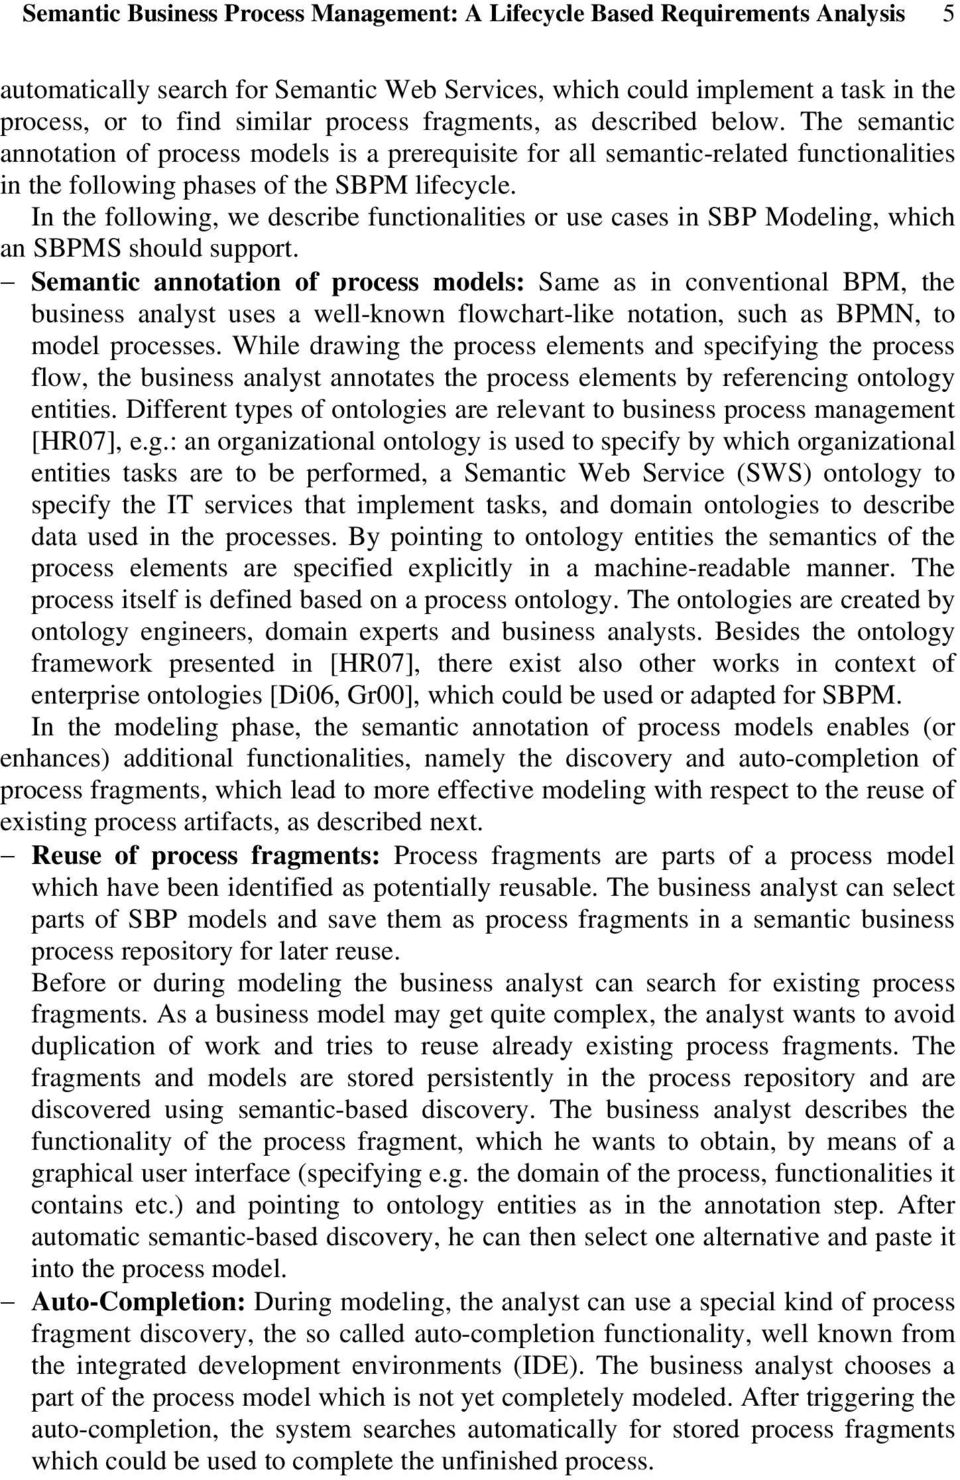 In the following, we describe functionalities or use cases in SBP Modeling, which an SBPMS should support.